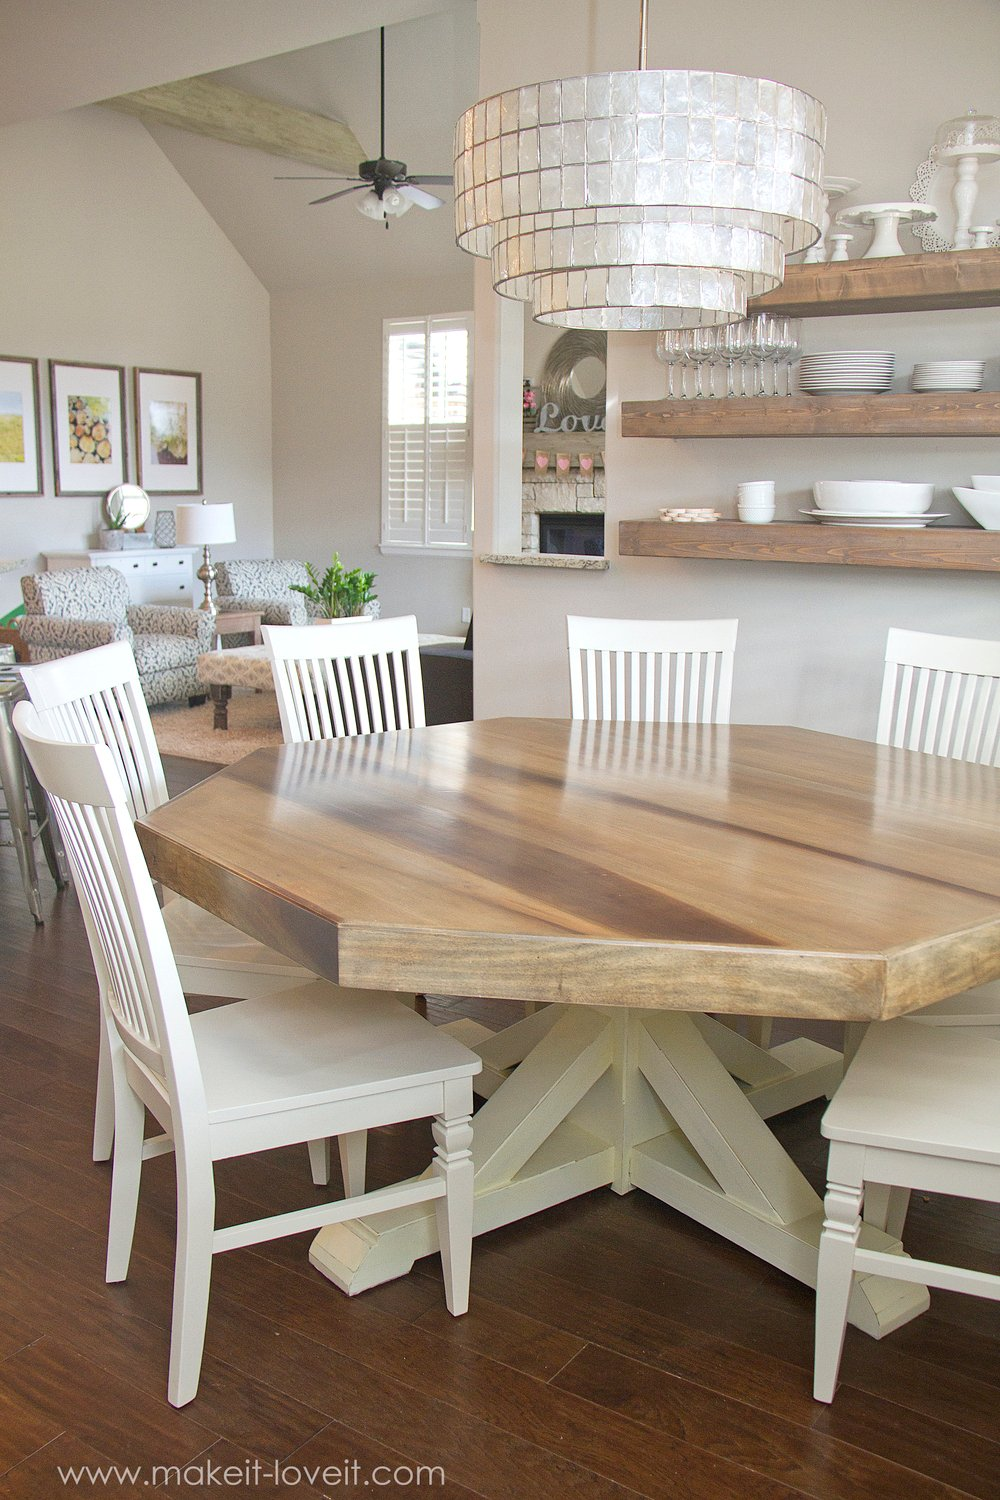 What Can I Put on the Legs of Kitchen Chairs So That They Slide ...